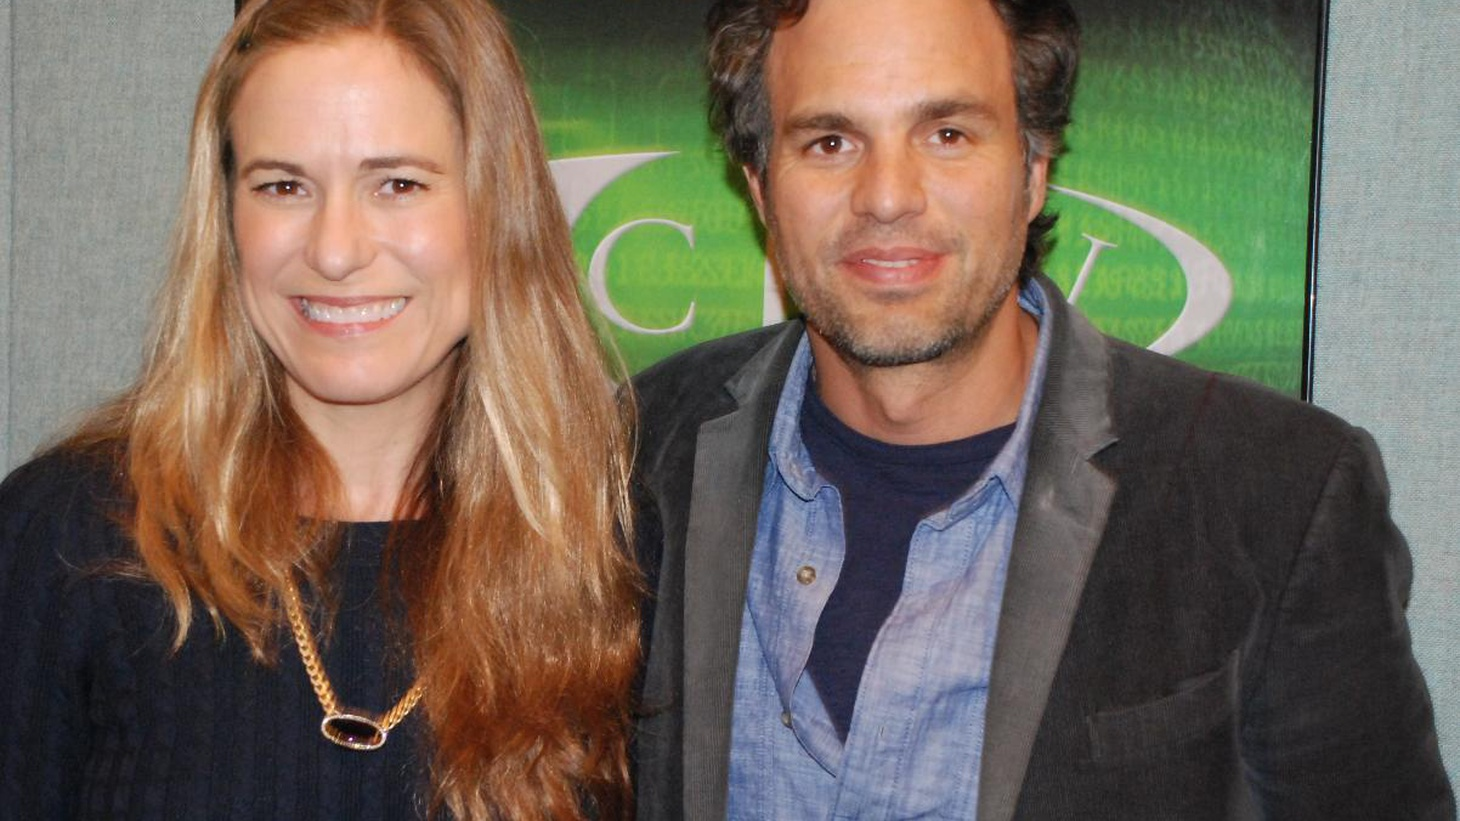 Actor Mark Ruffalo will be starring as Bruce Banner in the upcoming film The Avengers and makes his directorial debut with Sympathy for Delicious, which premiered at the Sundance Film Festival and won the Special Jury Prize.